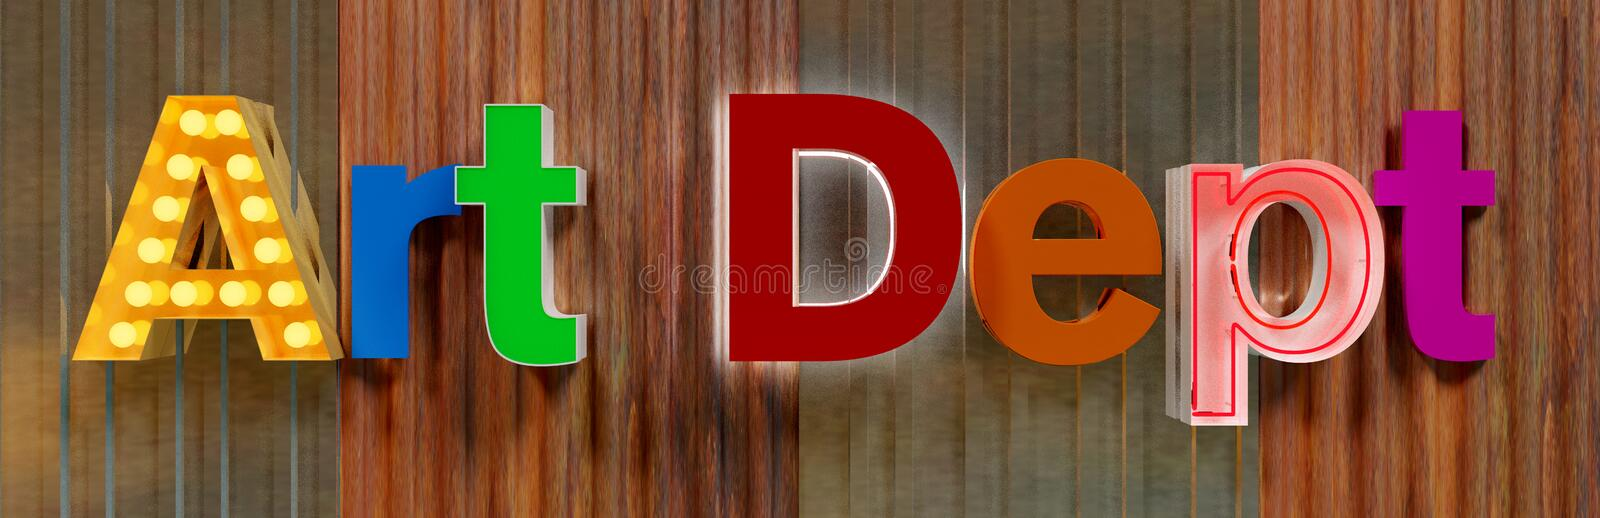 Art Letters on Metal Wall stock images